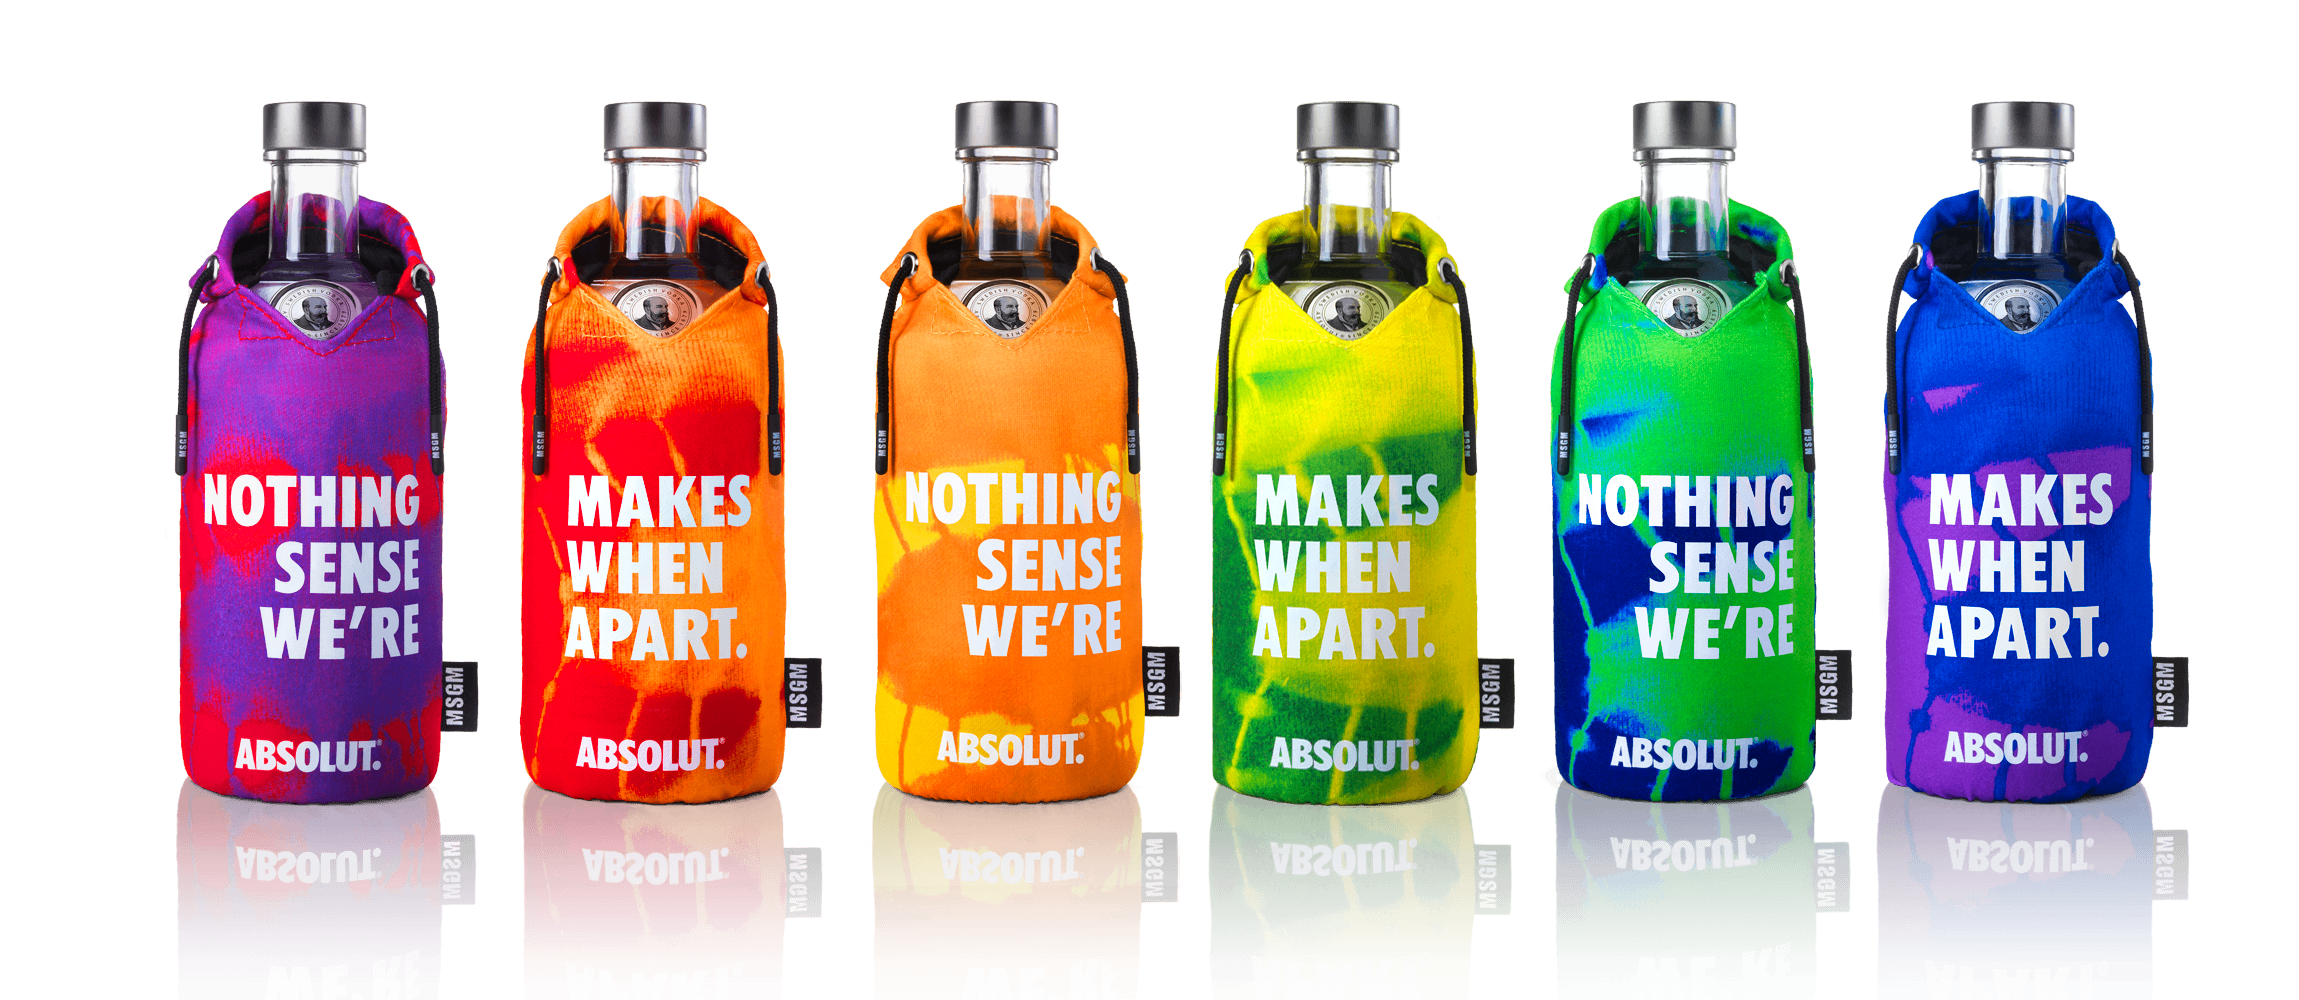 01_ABSOLUT-BETTER-TOGETHER_Famiglia